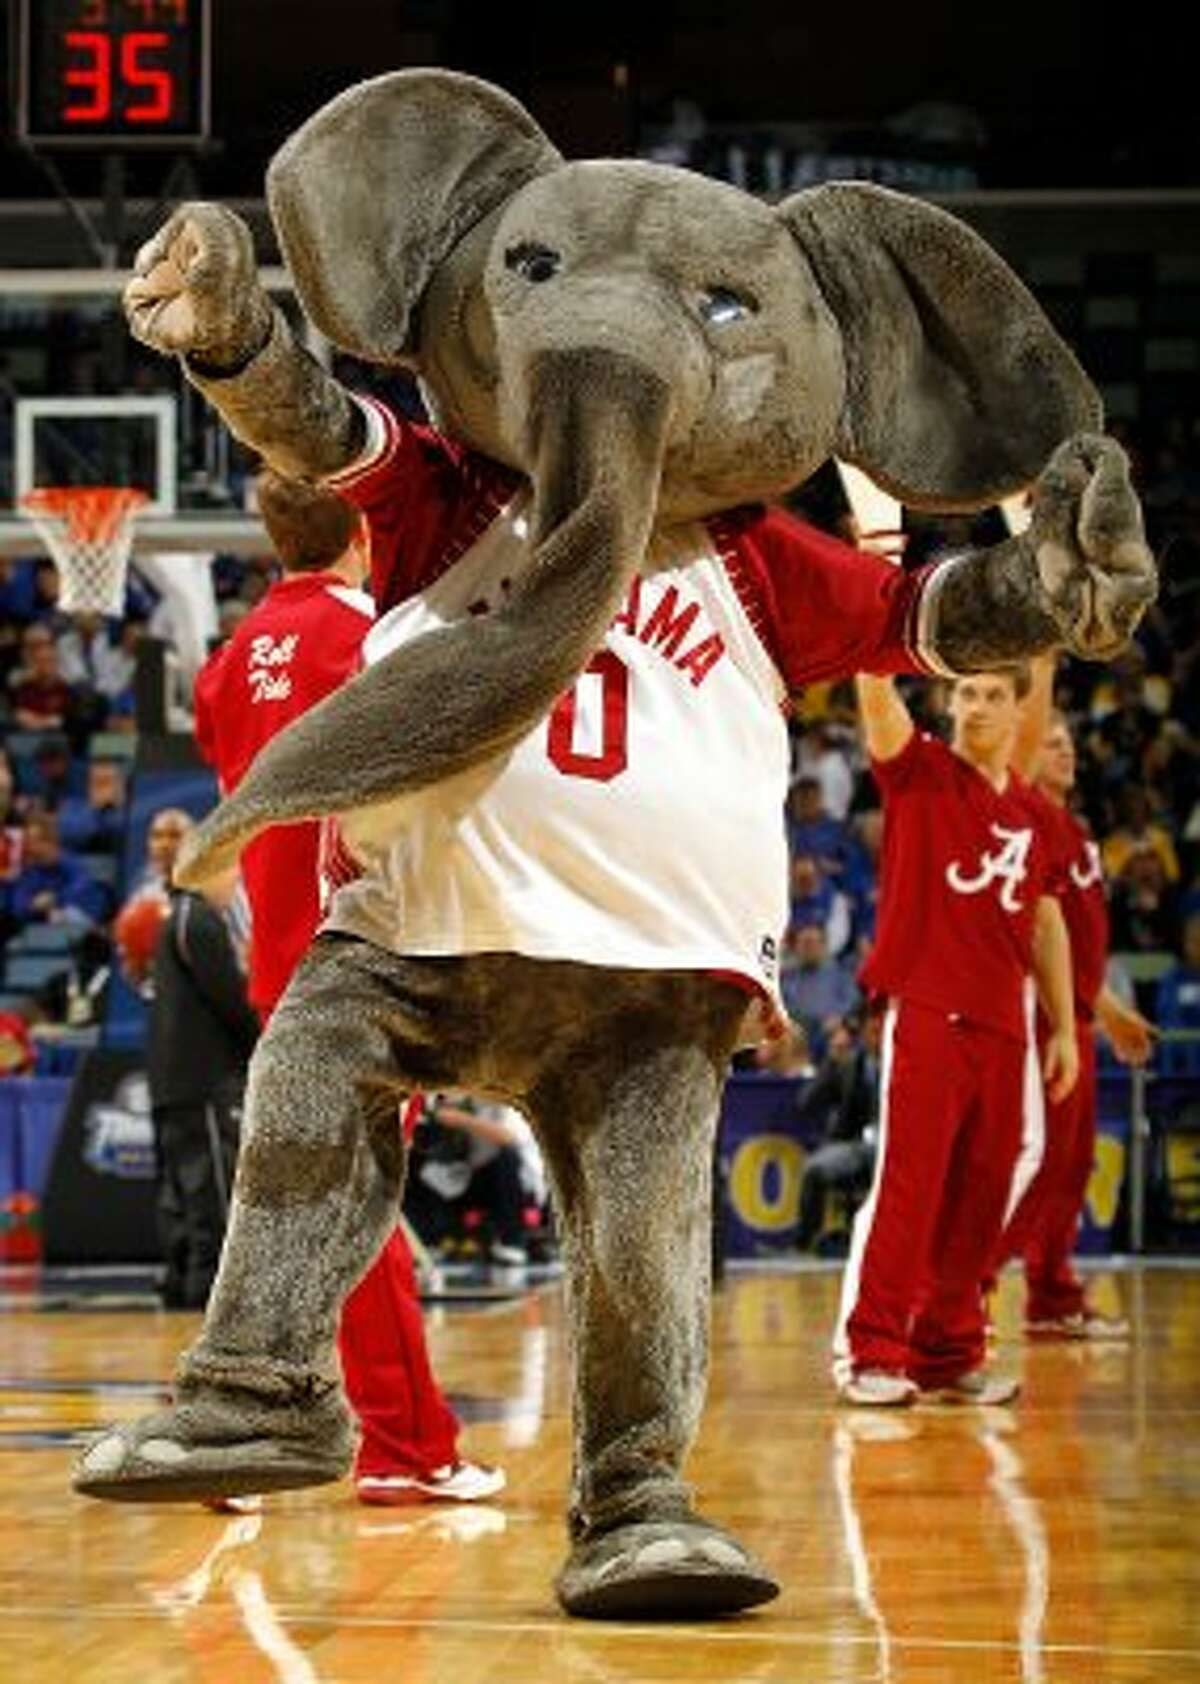 Big Al, the mascot for the Alabama Crimson Tide, seems to be having some sort of trunk malfunction. (Chris Graythen / Getty Images)